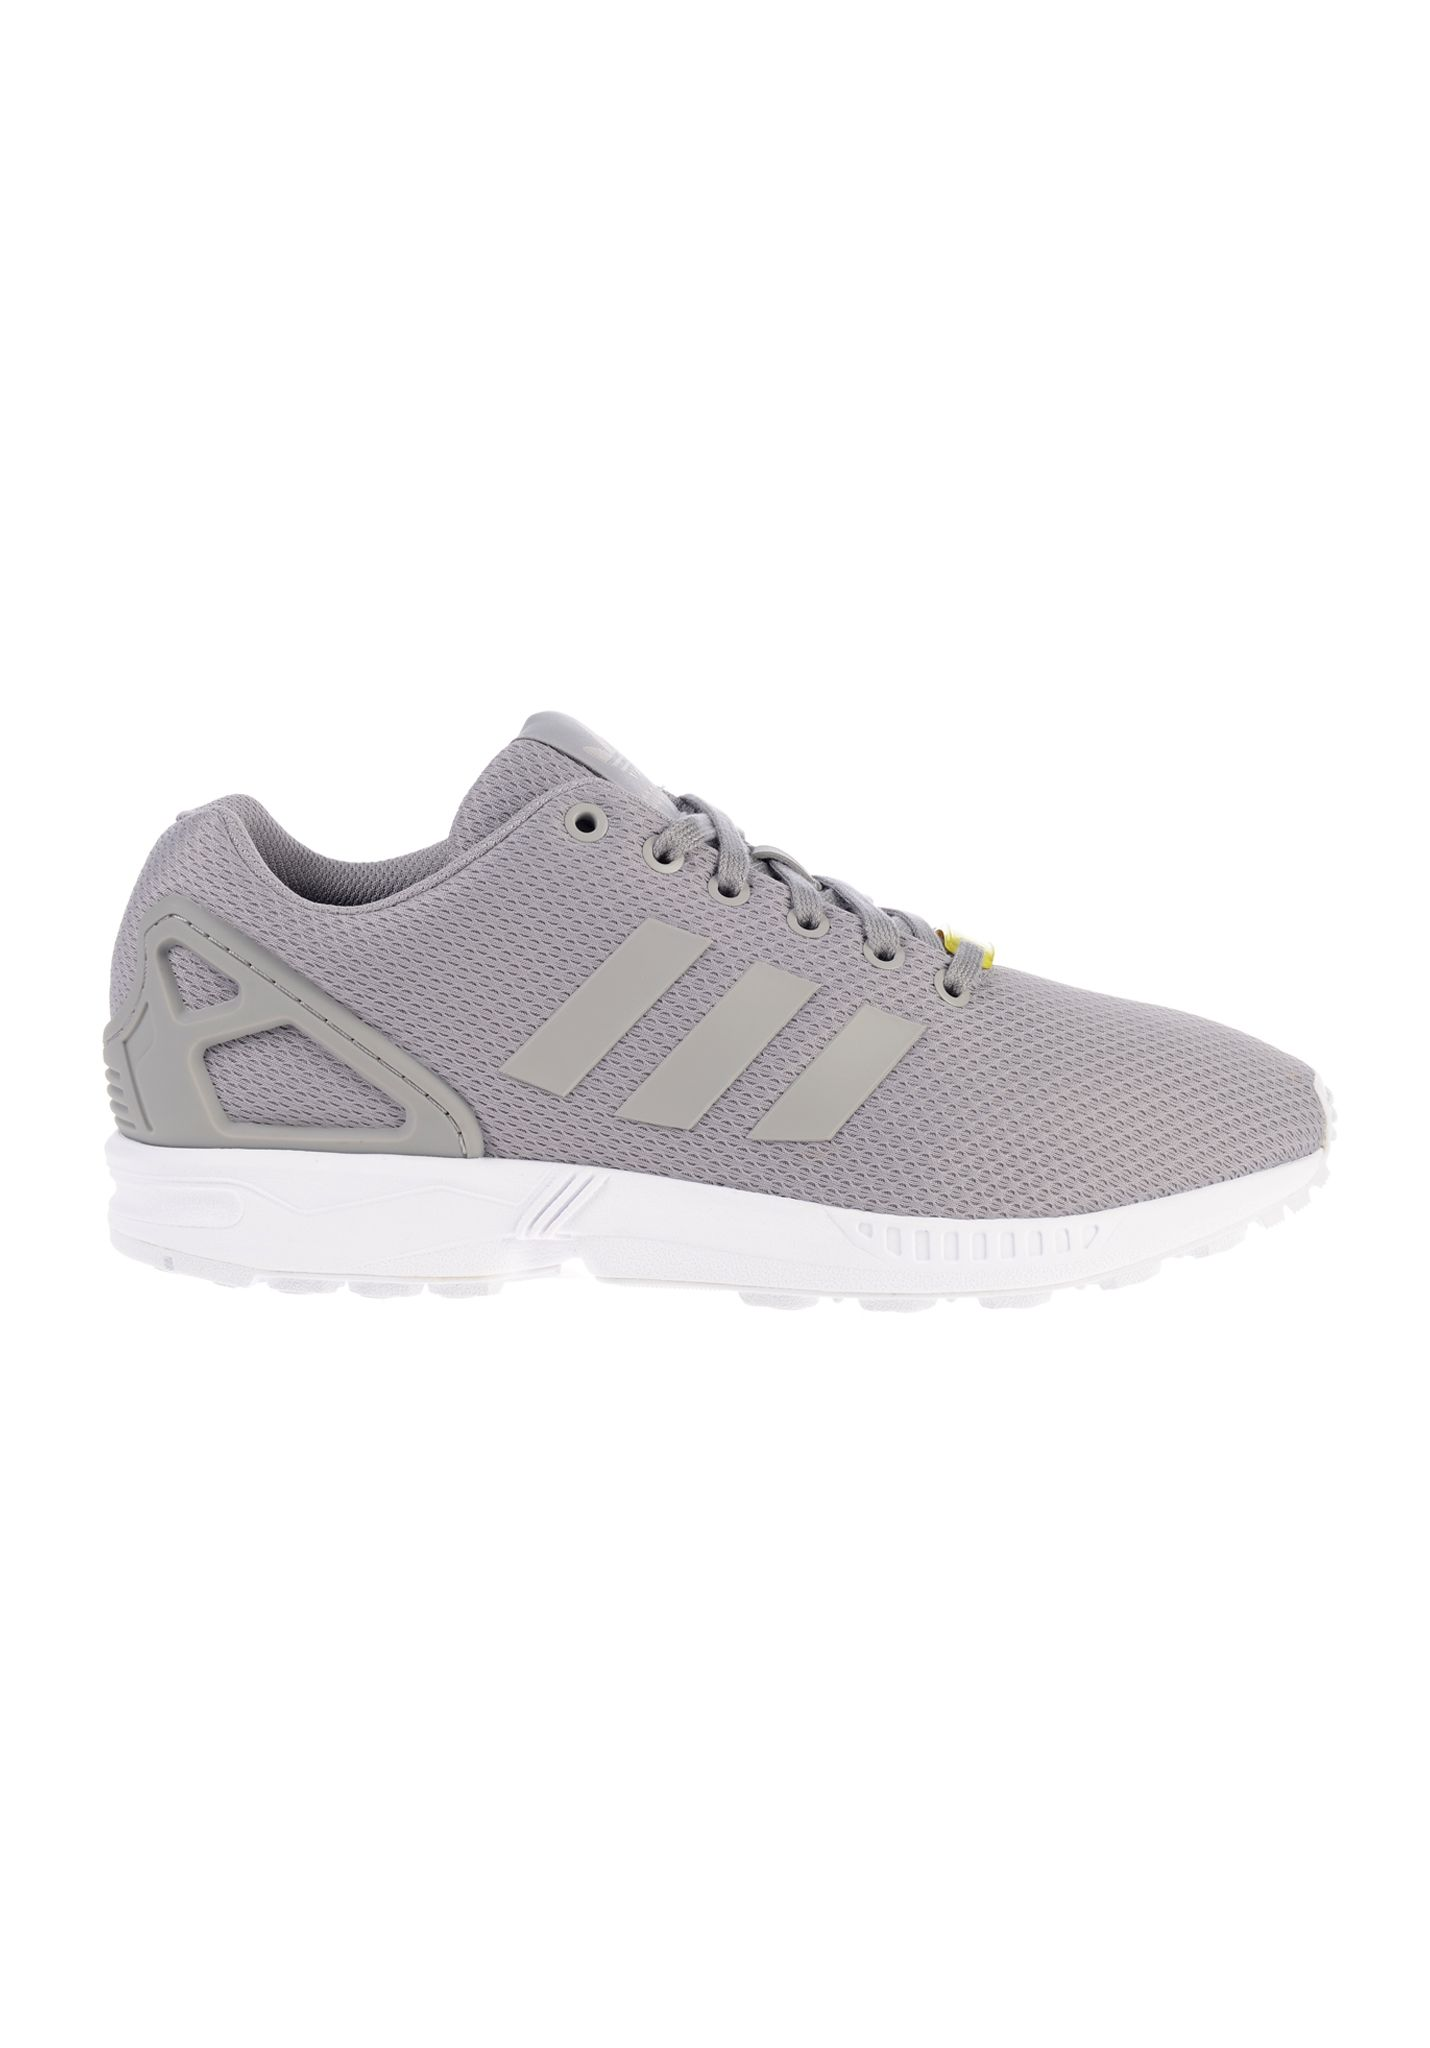 260ae5559 ADIDAS ORIGINALS ZX Flux - Sneakers - Grey - Planet Sports